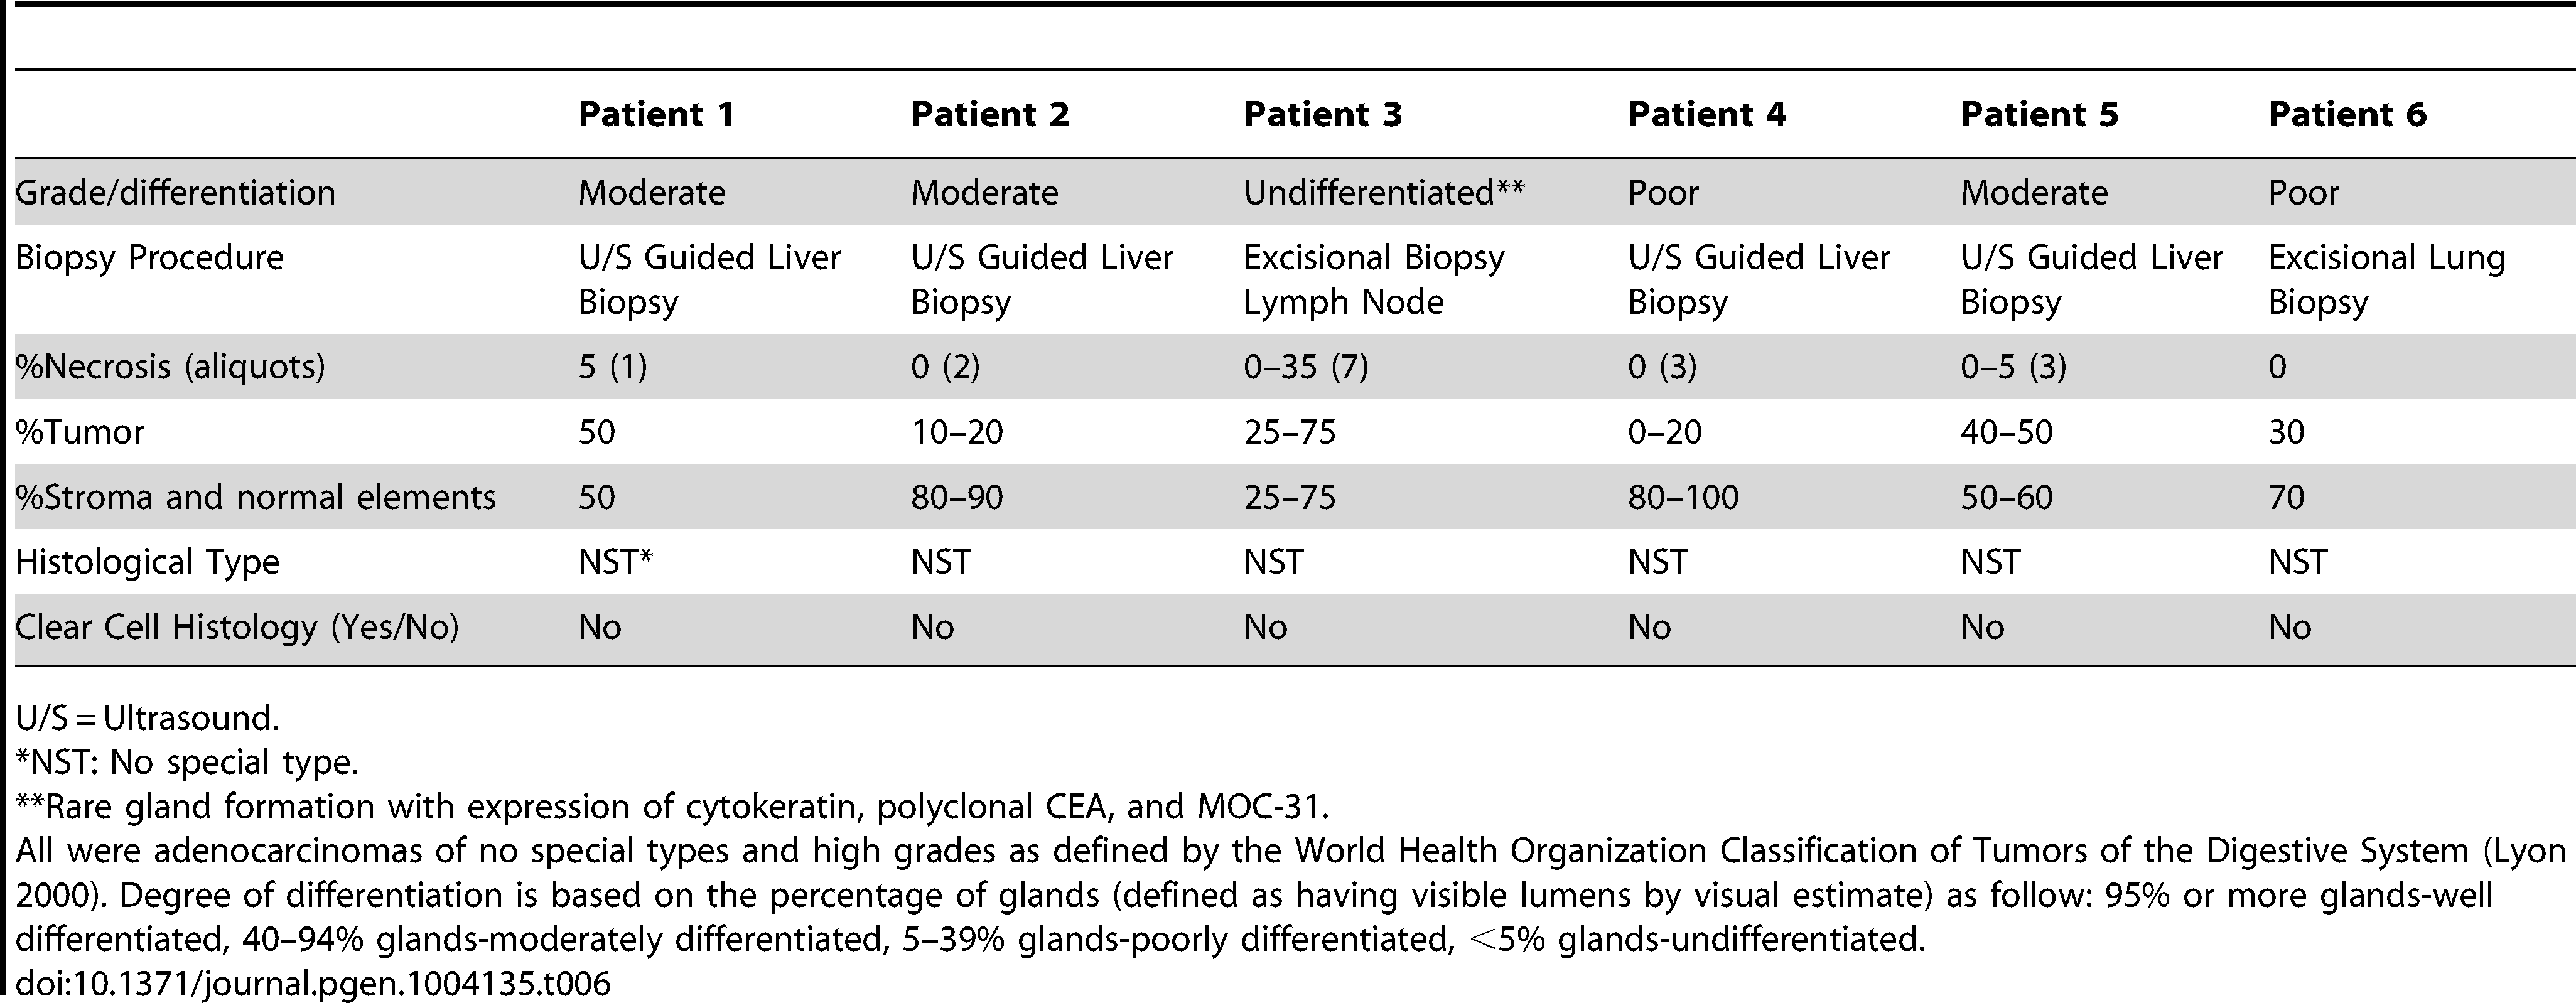 Pathological characteristics of 6 advanced, sporadic biliary tract cancer patients.